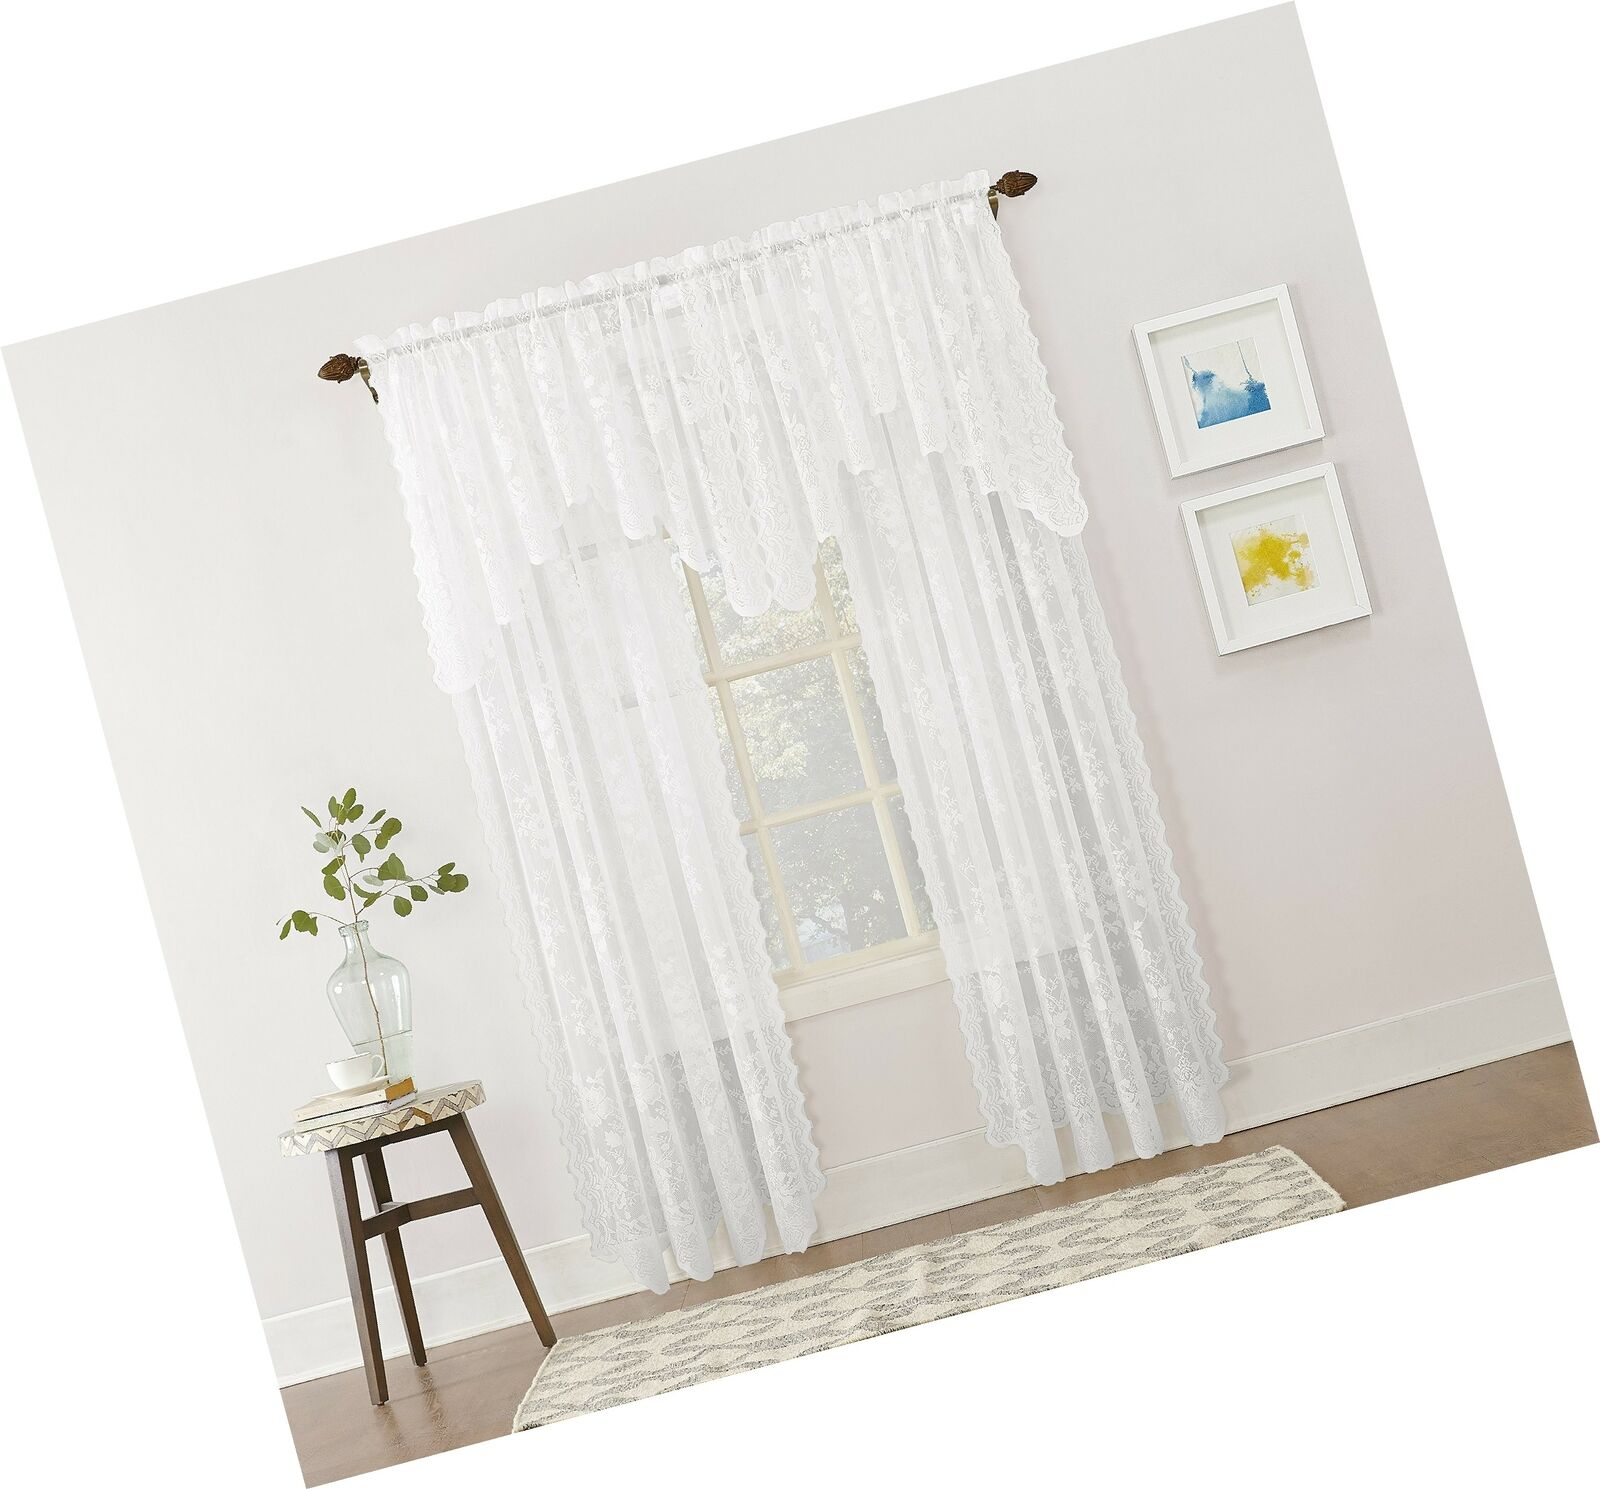 No 918 Alison Floral Lace Sheer Rod Pocket Curtain Panel 58 X White In Alison Rod Pocket Lace Window Curtain Panels (View 10 of 20)